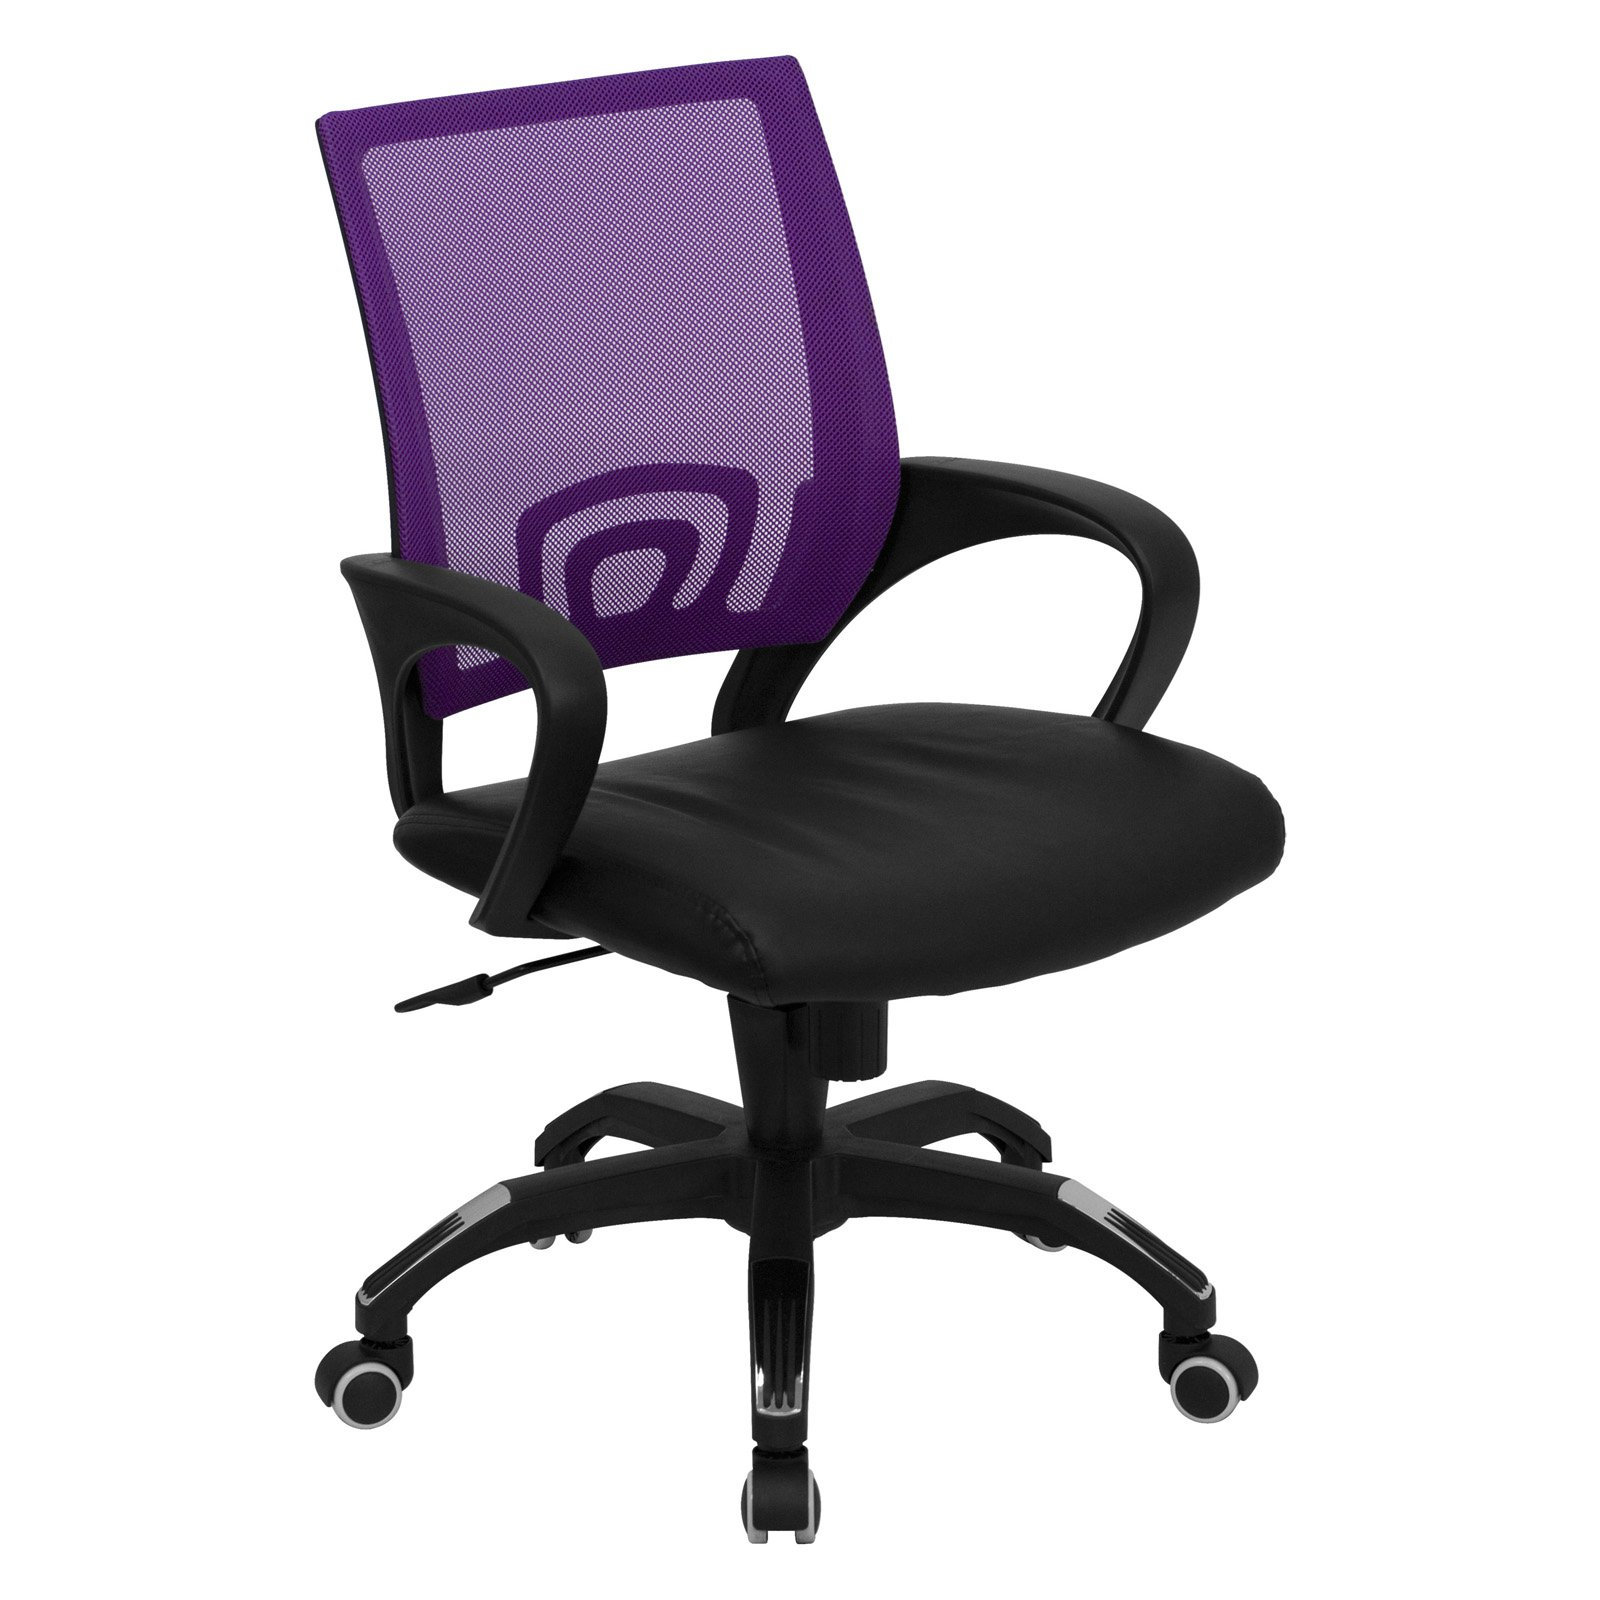 walmart computer chairs pier 1 directors chair flash furniture mid back with black leather seat